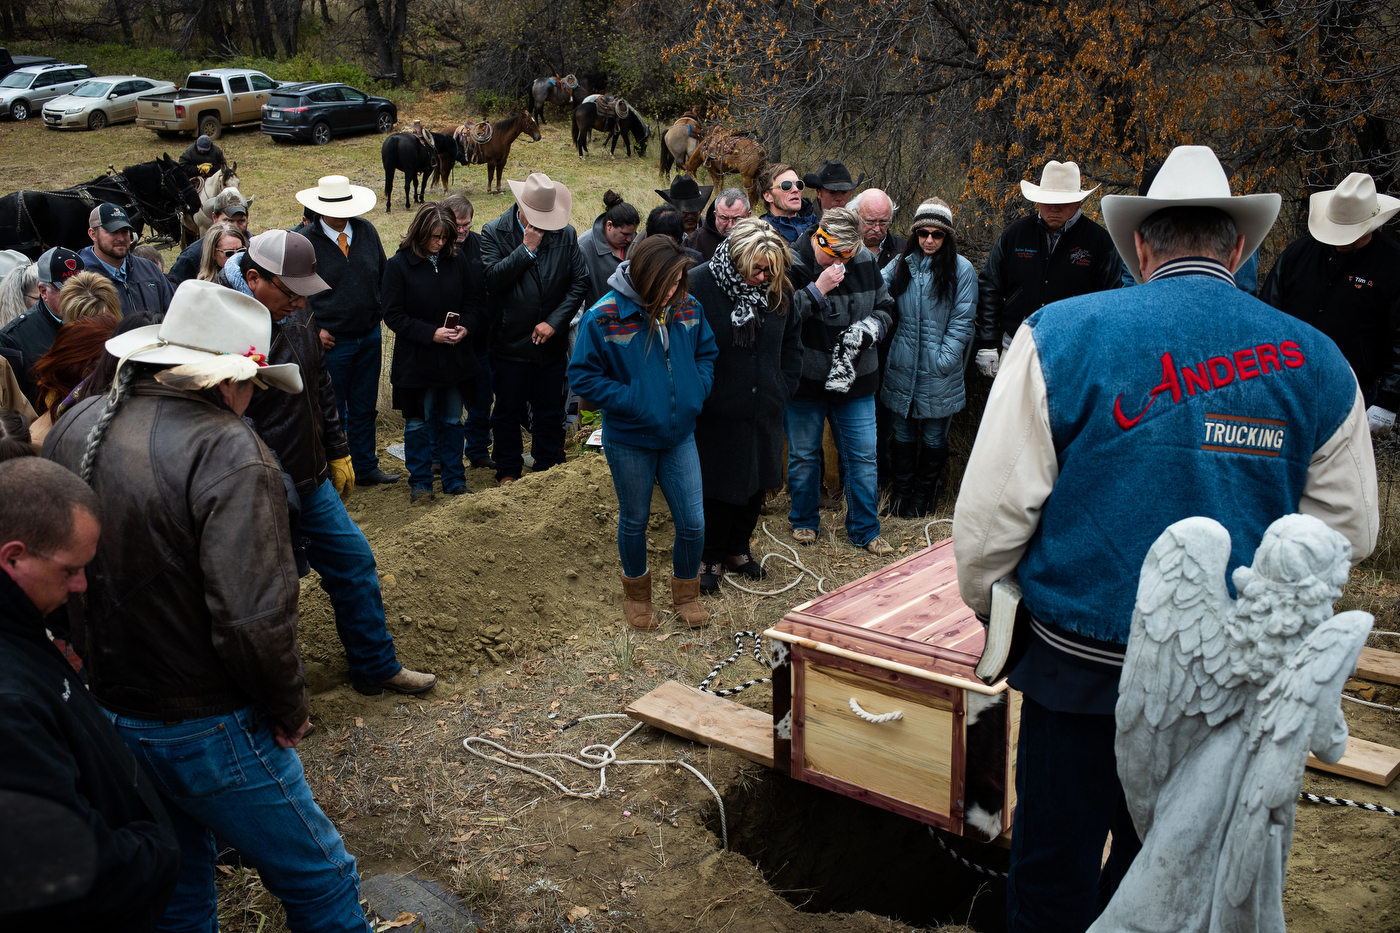 Mourners gather around the grave of Gregg Seim, 61, during his internment at the Seim Family Cemetery in Shadehill, SD.